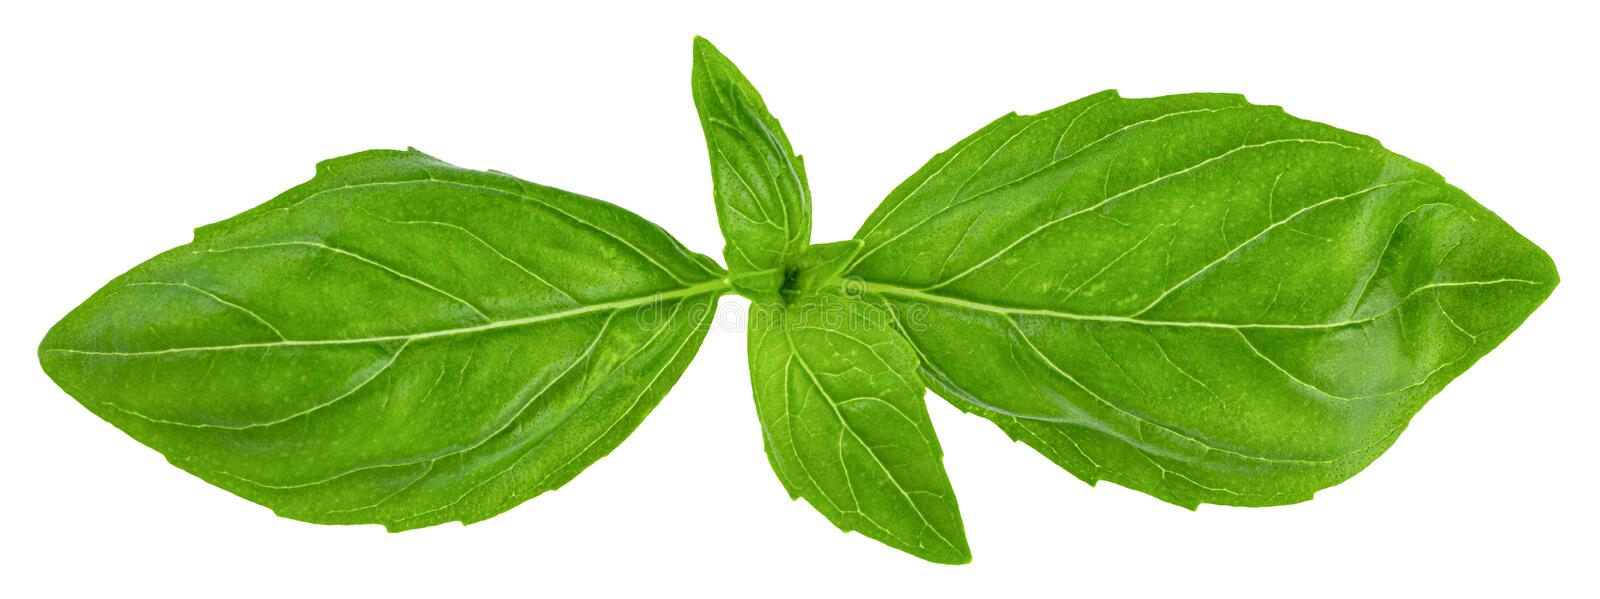 Basil leaves isolated on white background with clipping path.  stock photo